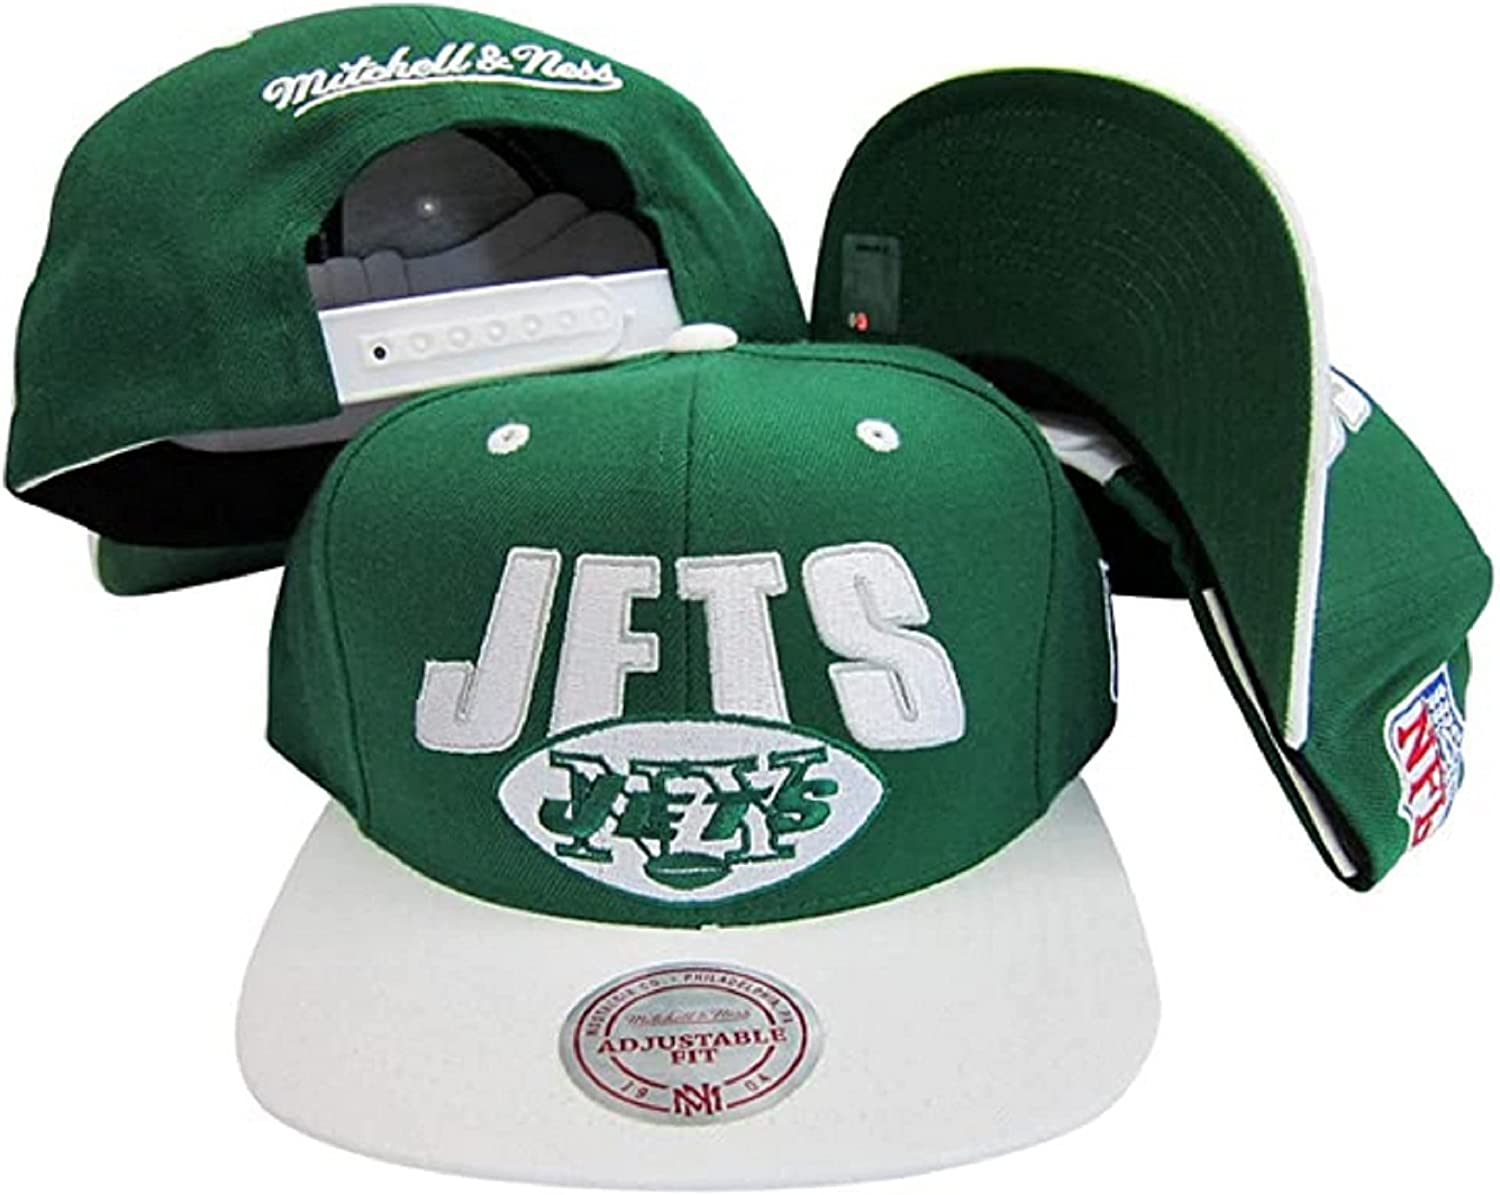 New Era Excellent Authentic Exclusive Jets Snapback 9Fifty Jacksonville Mall 9Twent York